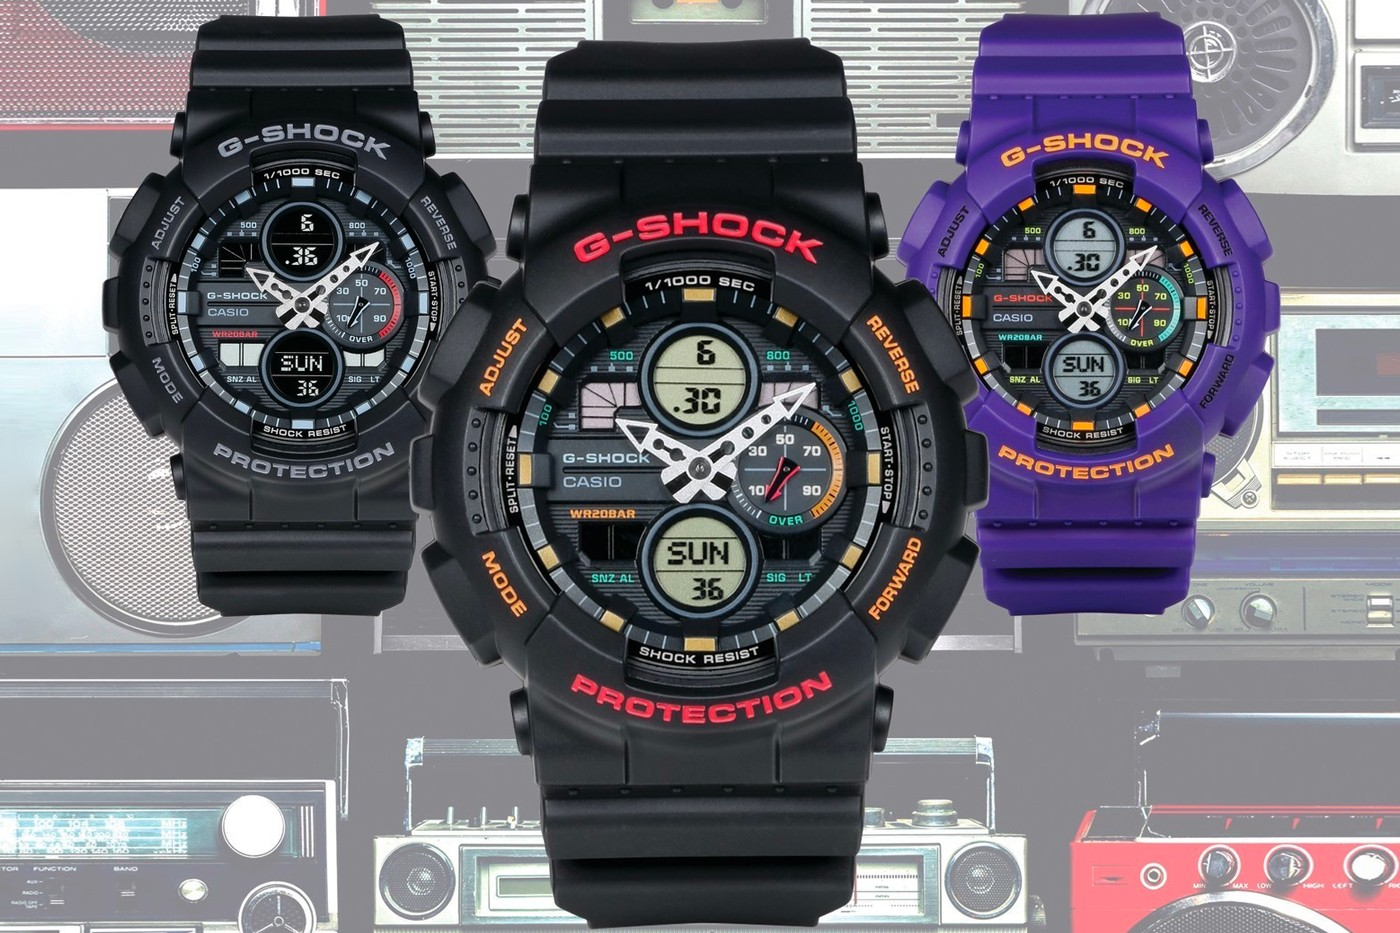 87efe3f482 G-SHOCK Looks to the '90s Boombox Era For Its Latest GA-140 Series